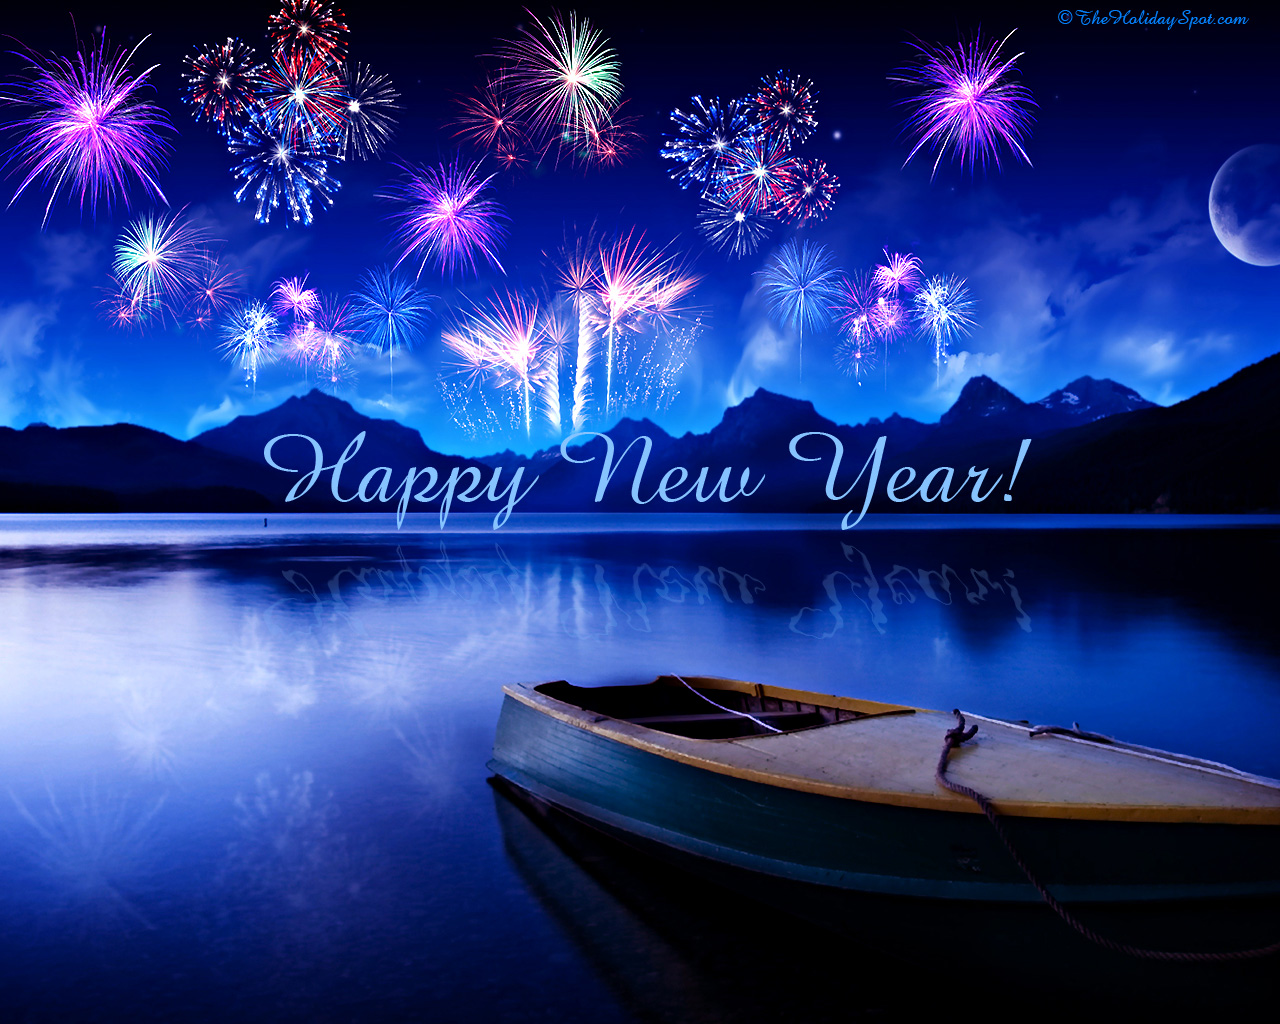 2011NewYearWallpaper06jpg. 1280 x 1024.Best Happy New Year Wallpapers